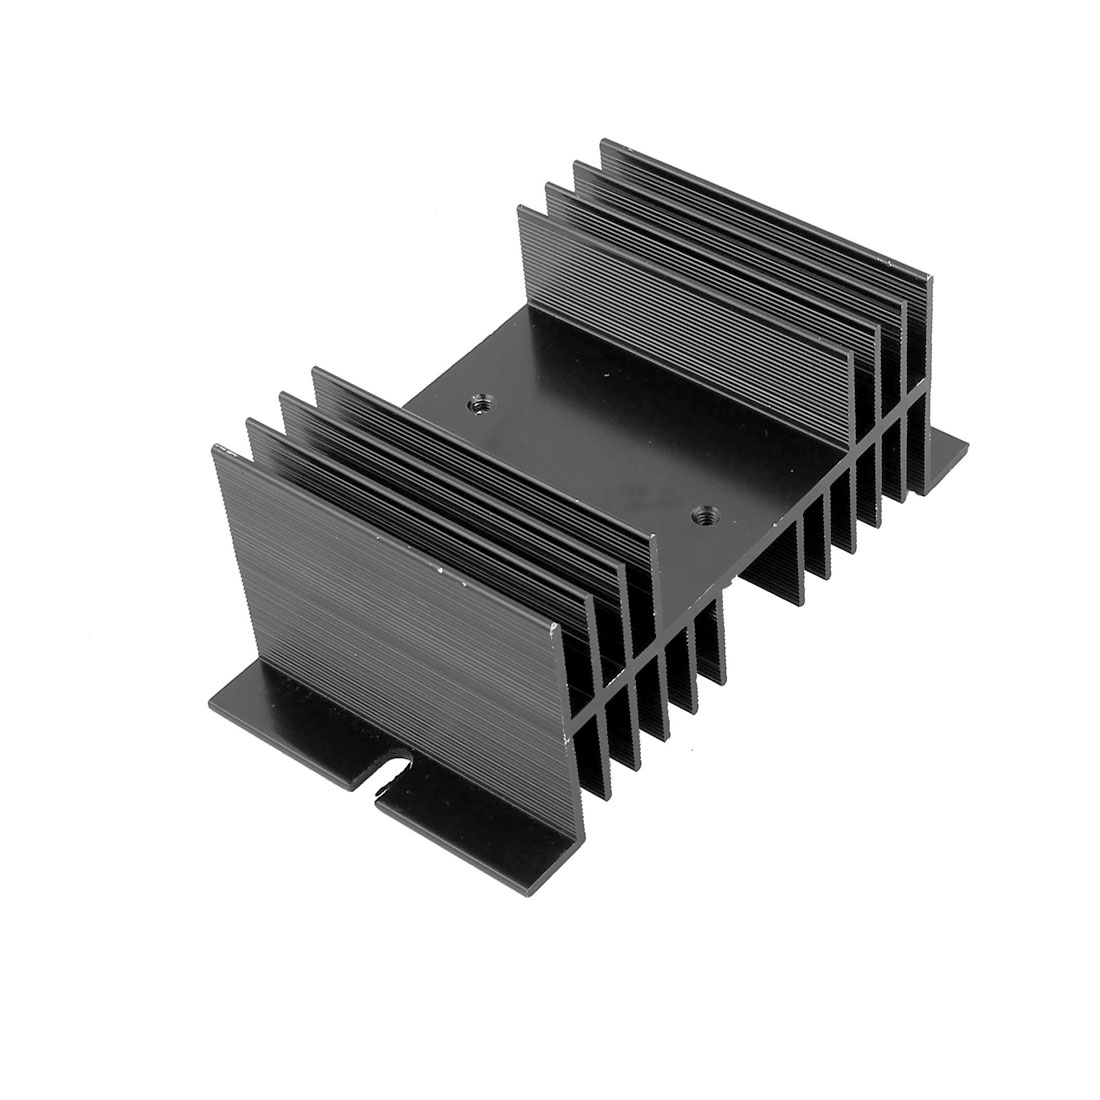 12.5mmx7mmx5mm Black Aluminium Heat Dissipation Cooling Heatsink Cooler Sink for Solid State Relay SSR